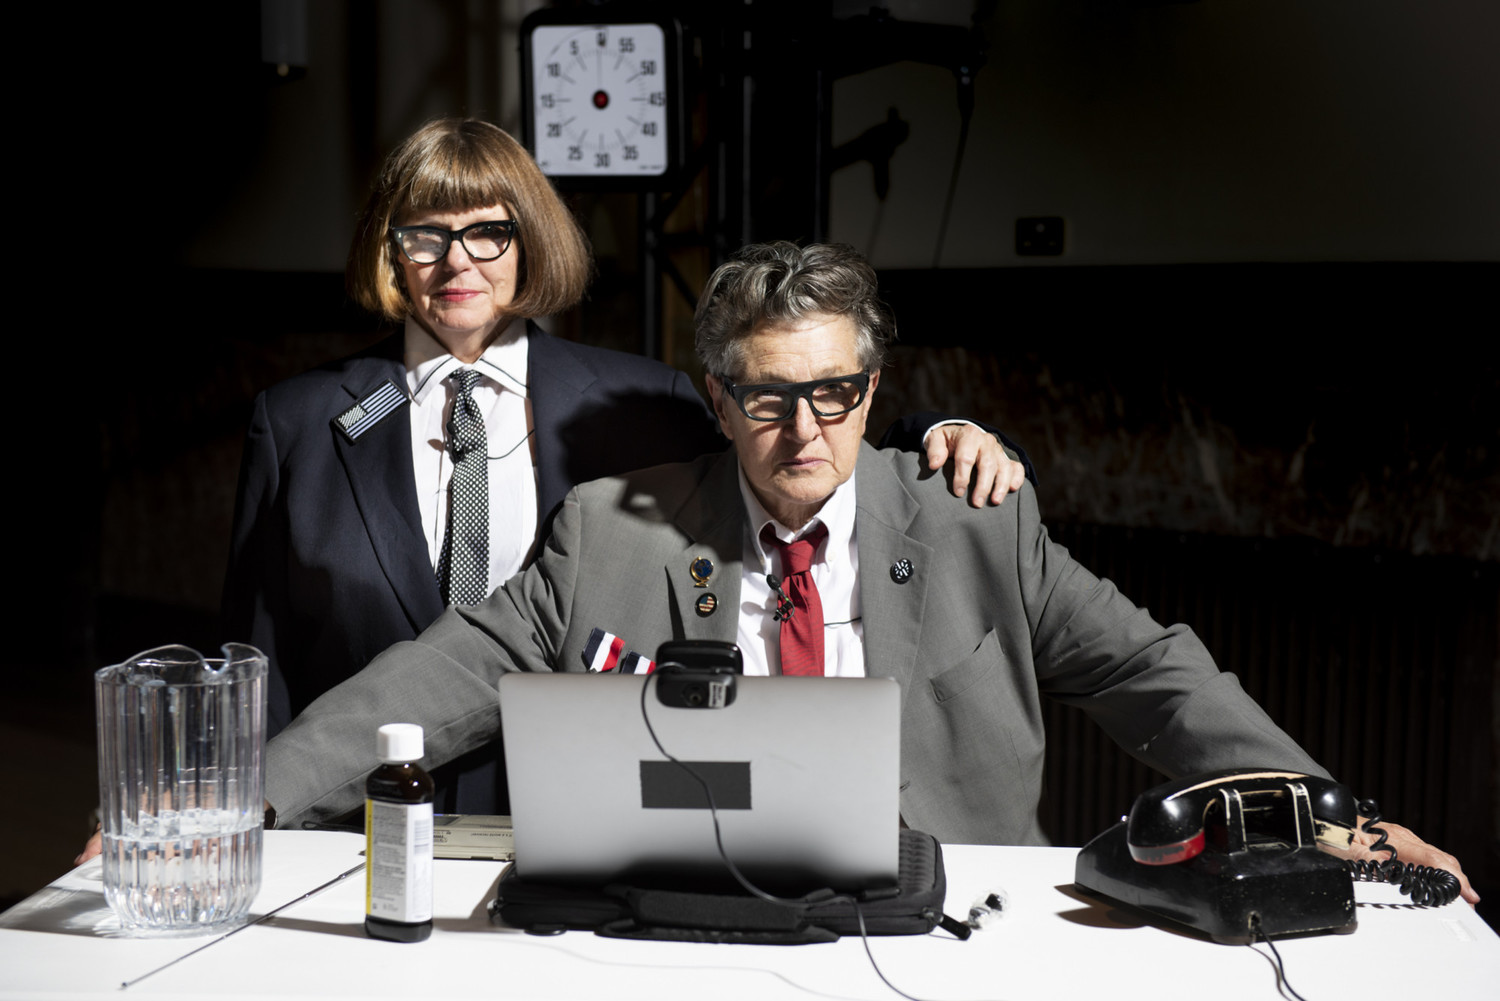 BWW Review: Enter the Situation Room with UNEXPLODED ORDNANCES (UXO) at Guthrie's Dowling Studio